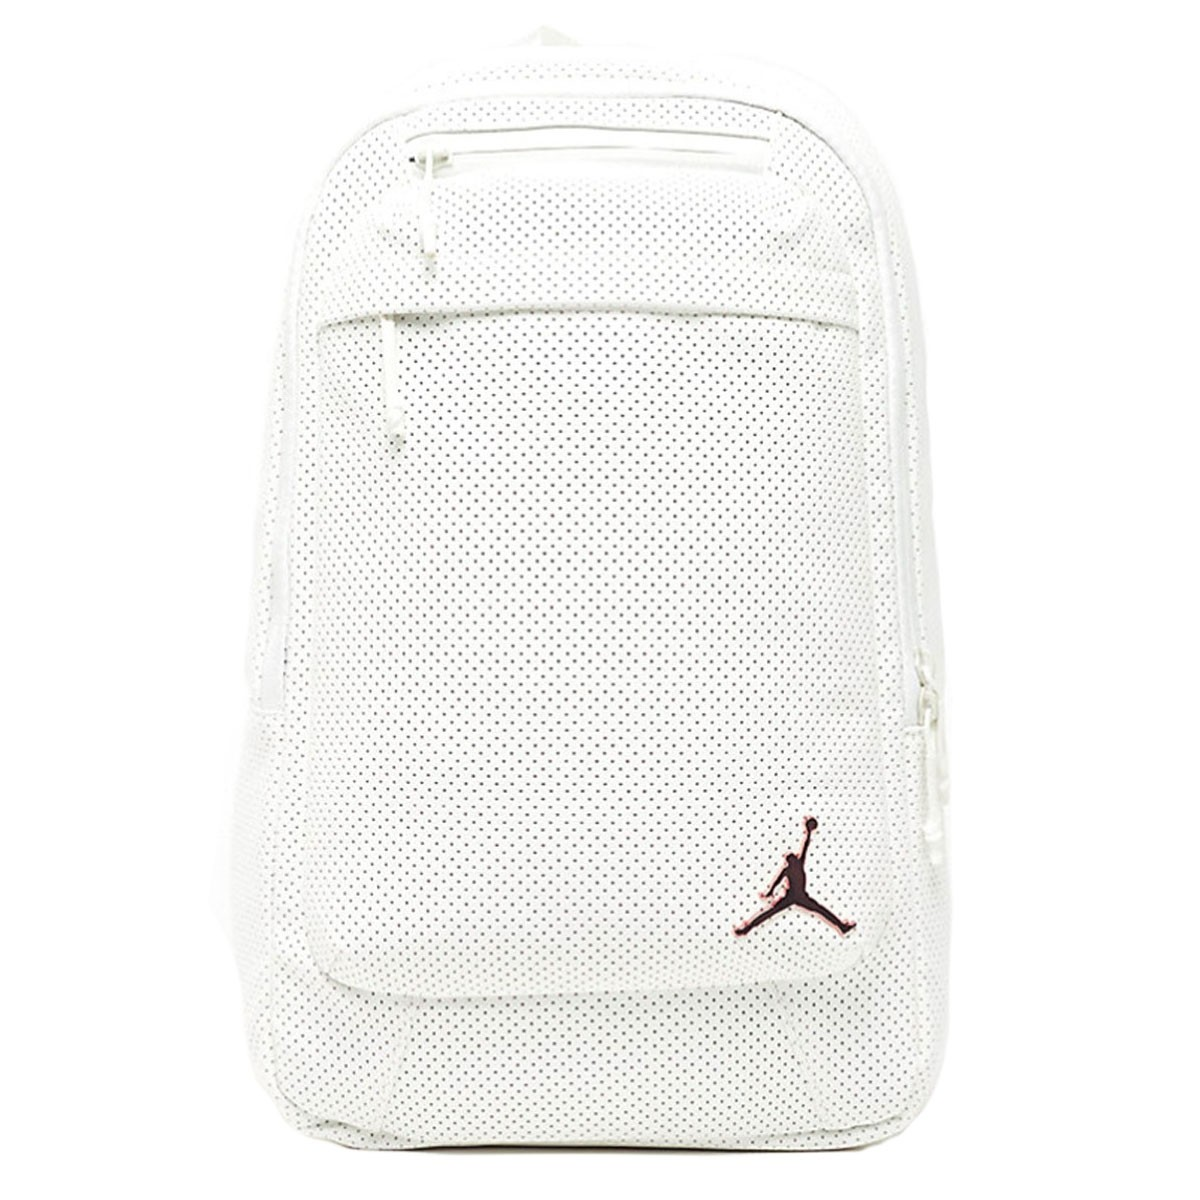 Jordan Legacy Backpack 'White'